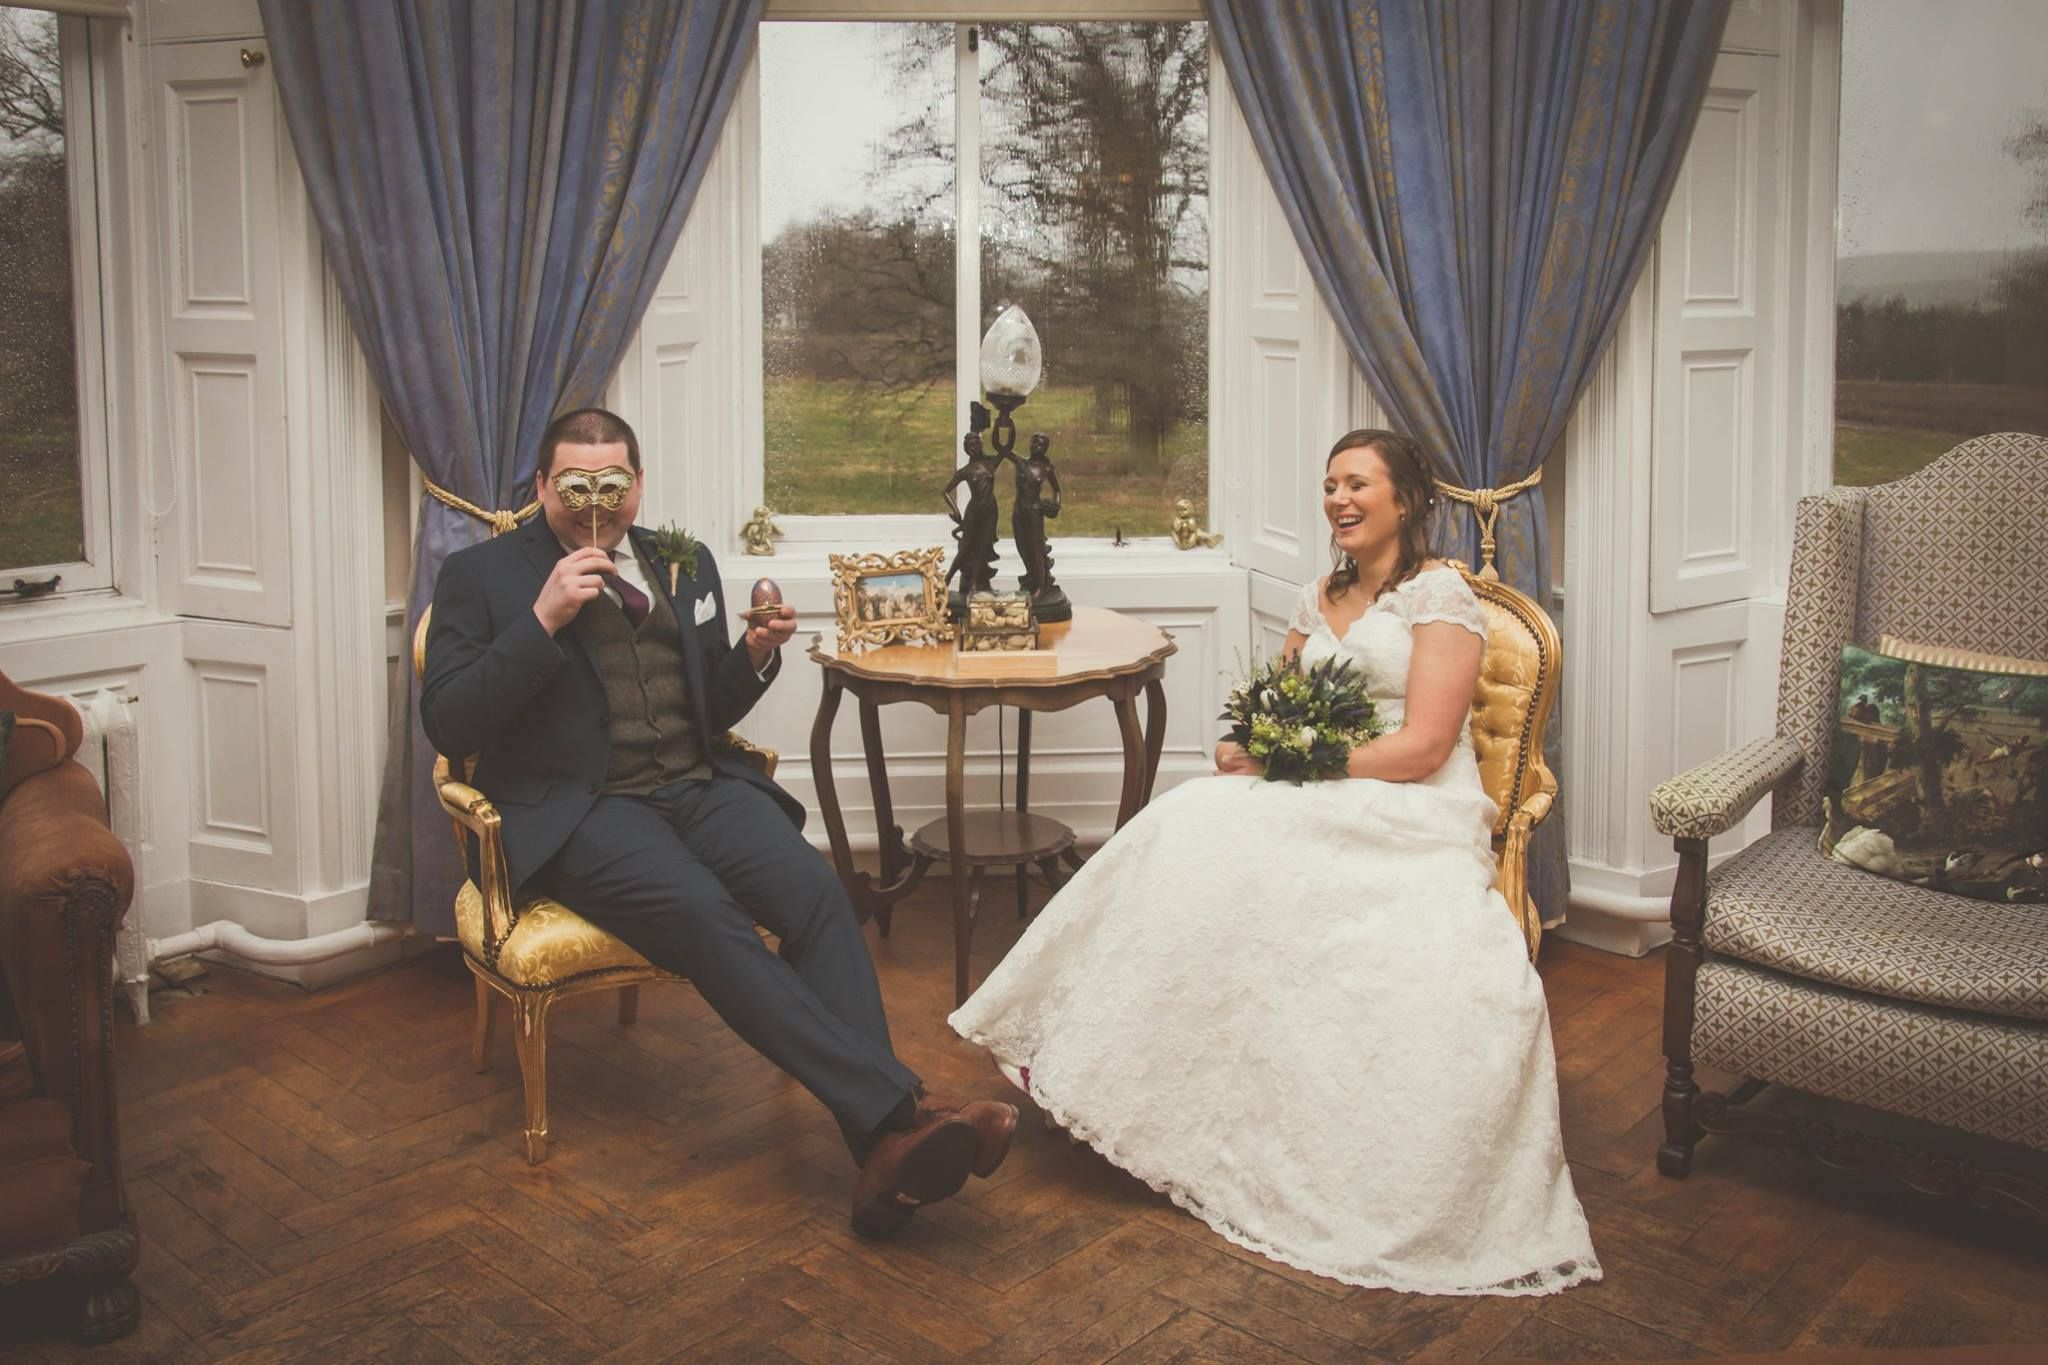 Portraits From An Irish St Patricks Day Wedding In A Scottish Borders Castle The Middle Of Nowhere To Run Hide Oh My